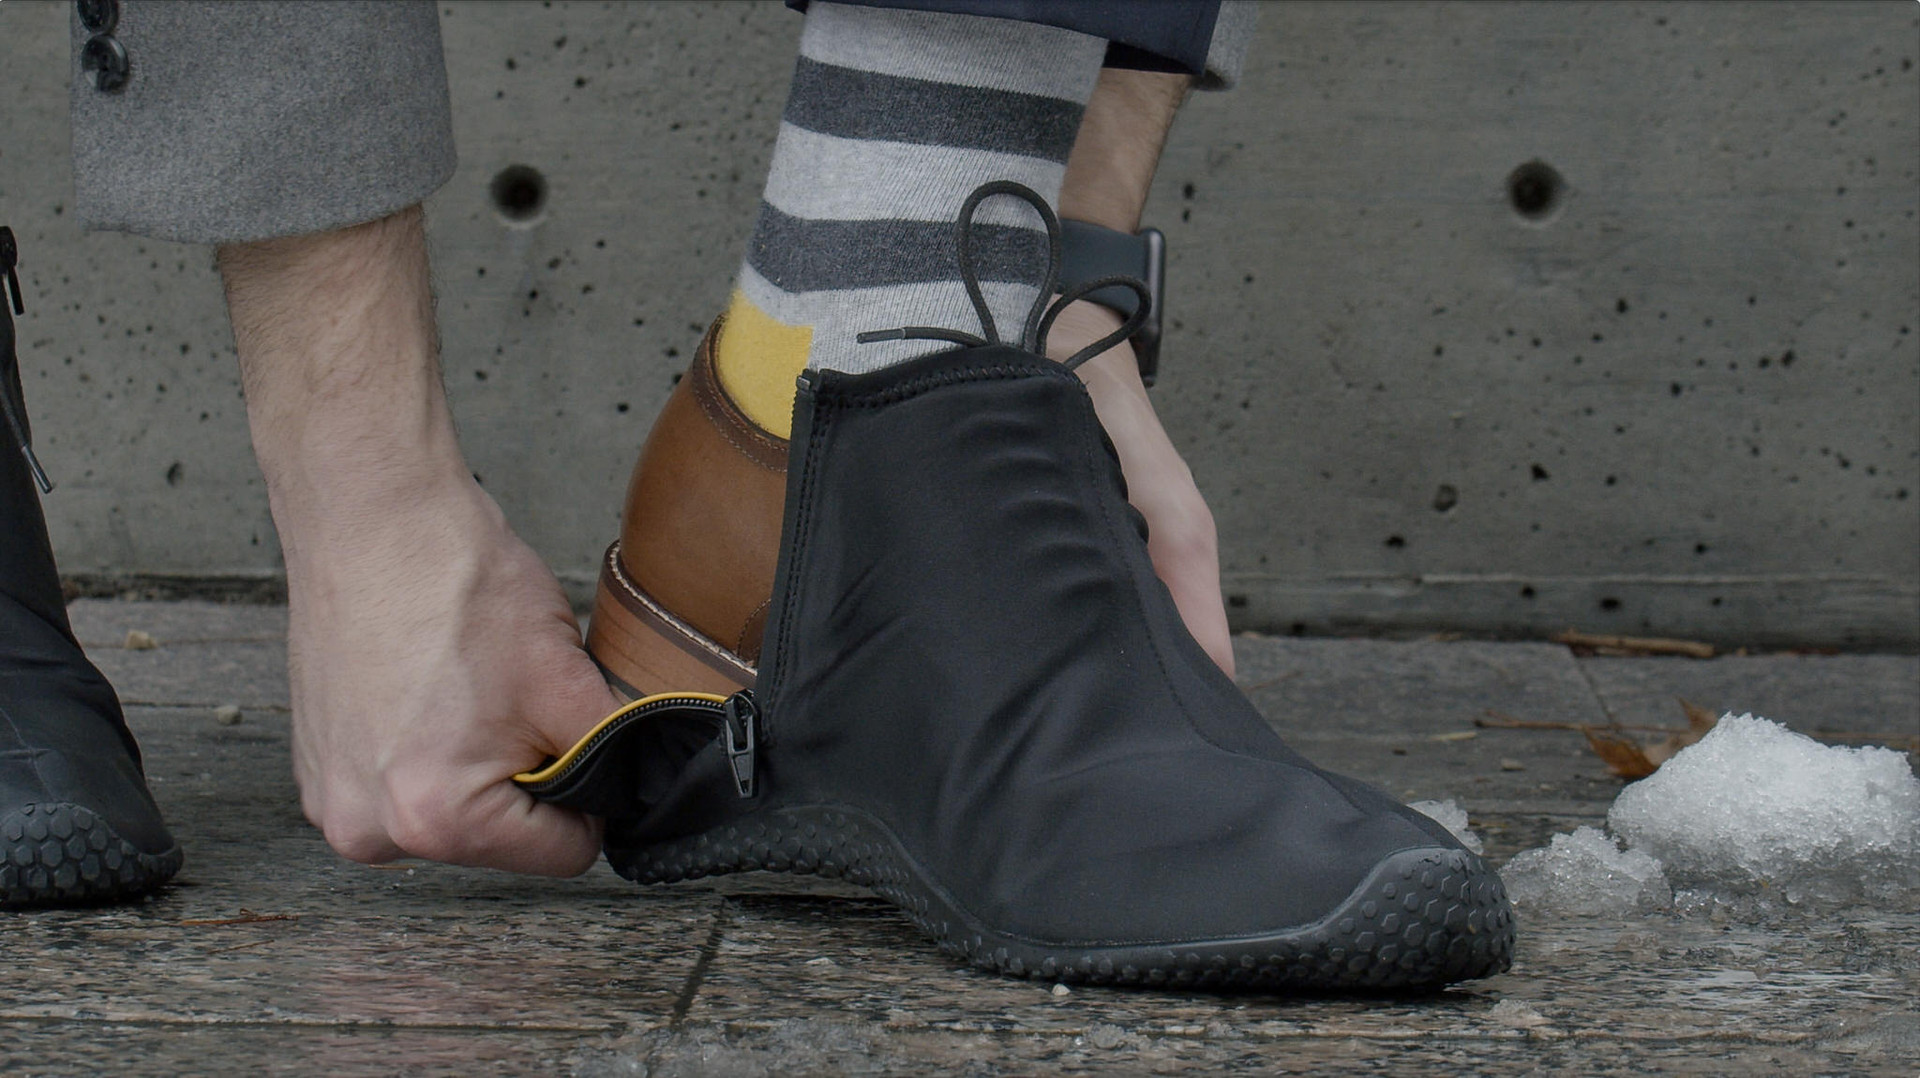 Easy Use vs. Anti-Slip: Which Is More Important to You?